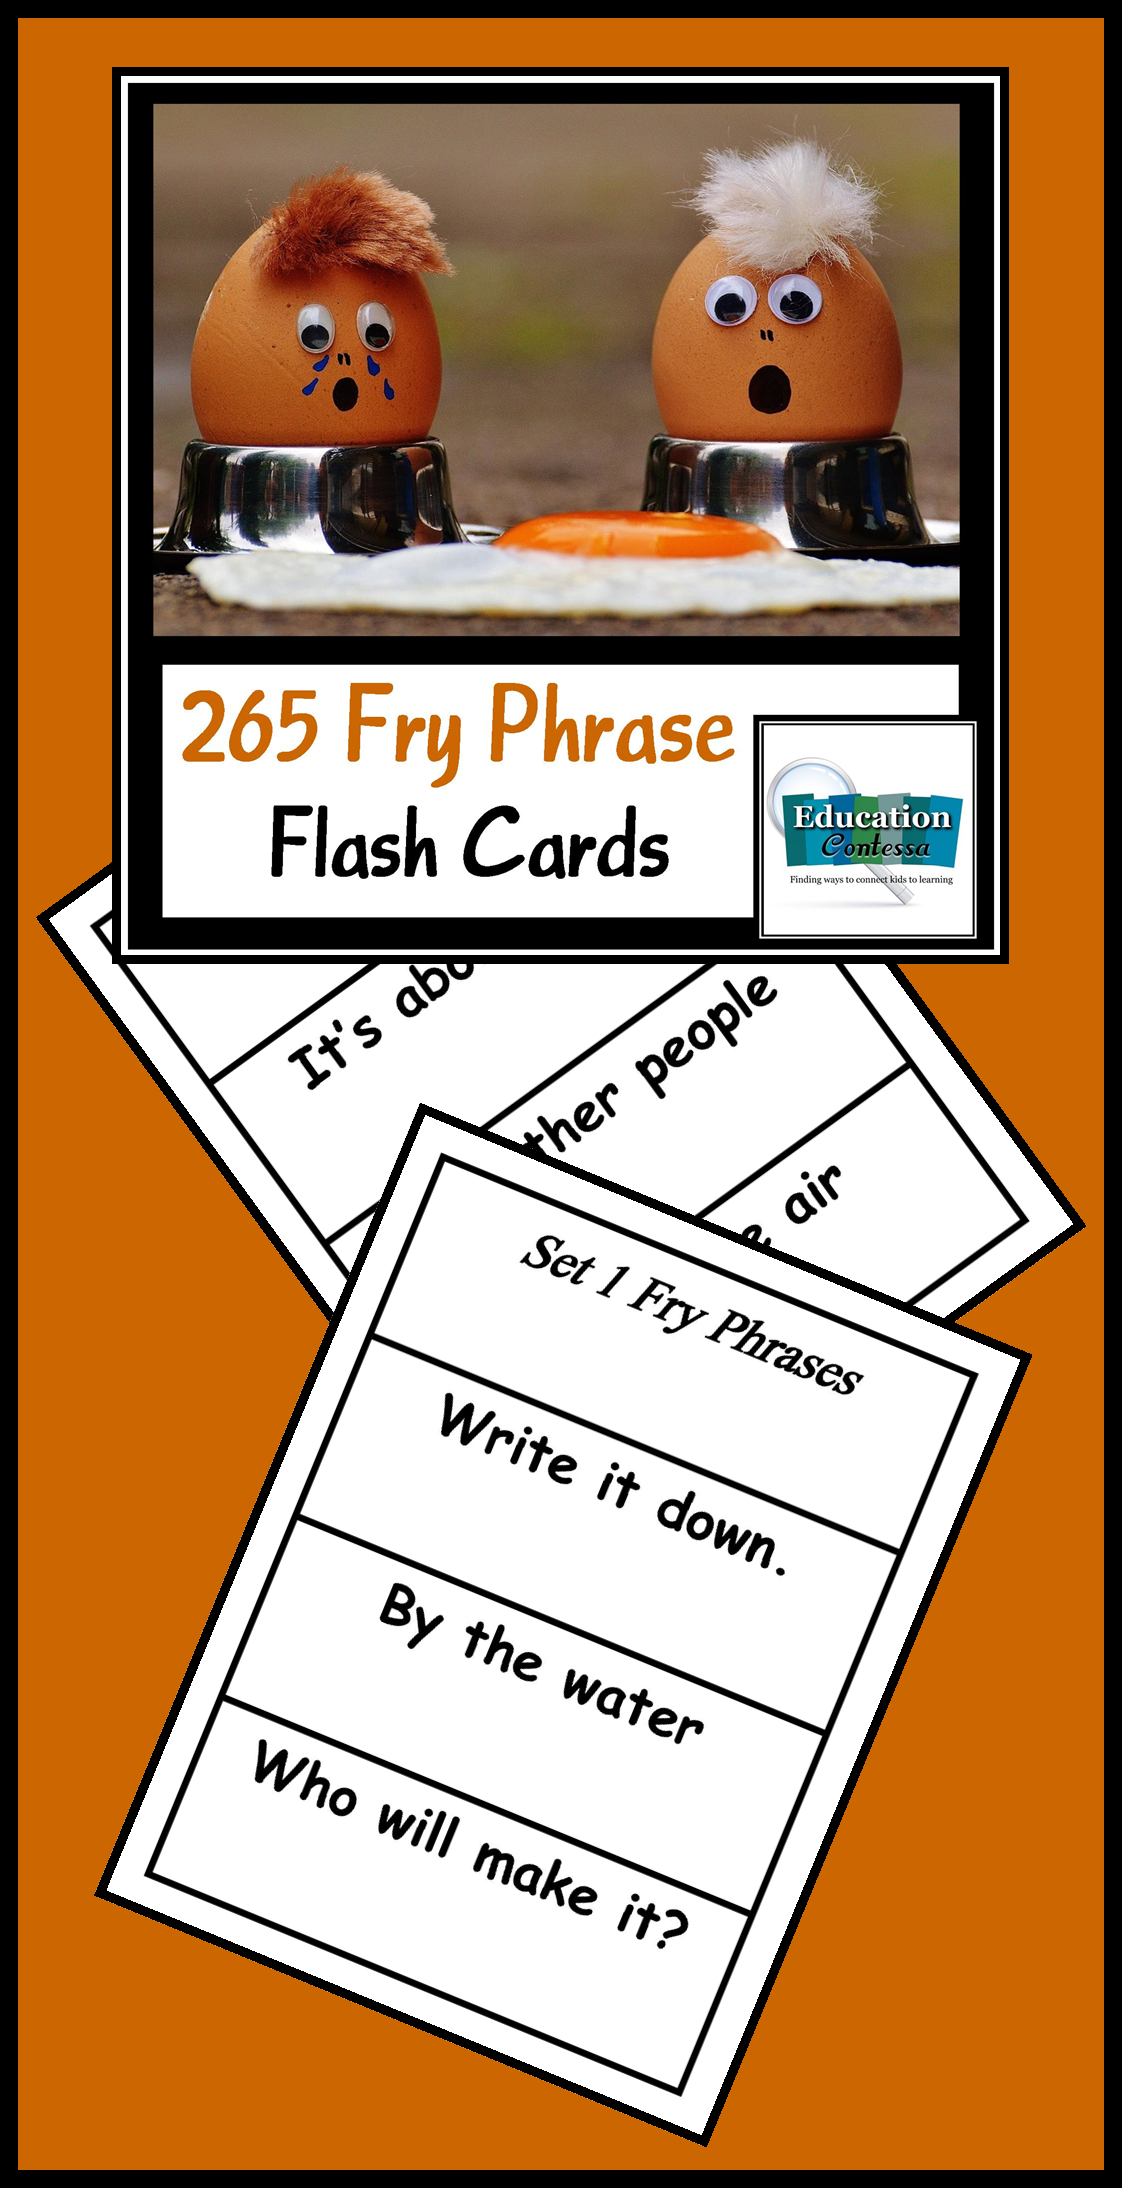 photograph relating to Fry Phrases Printable titled FRY Expression FLASH Playing cards FOR SIGHT Term FLUENCY Educate